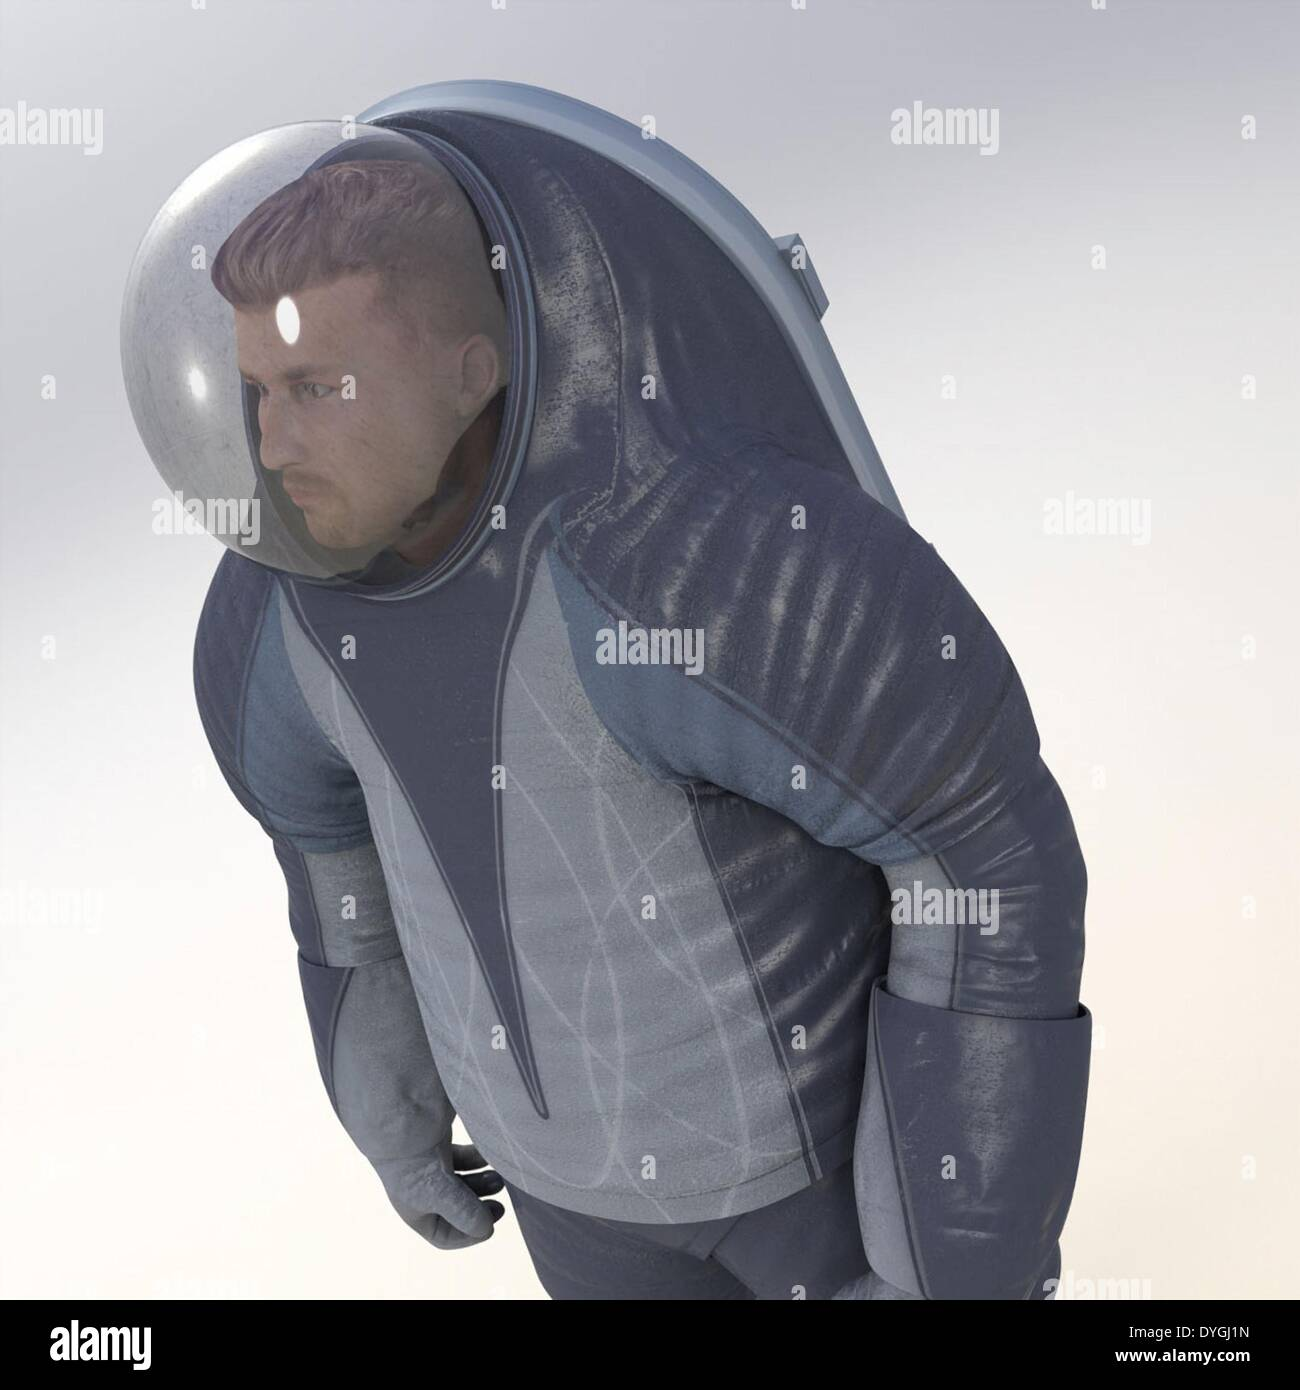 NASA Has Unveiled Three Cover Layer Designs For The Z 2 Prototype Space Suit Next Step In NASAs Advanced Development Program